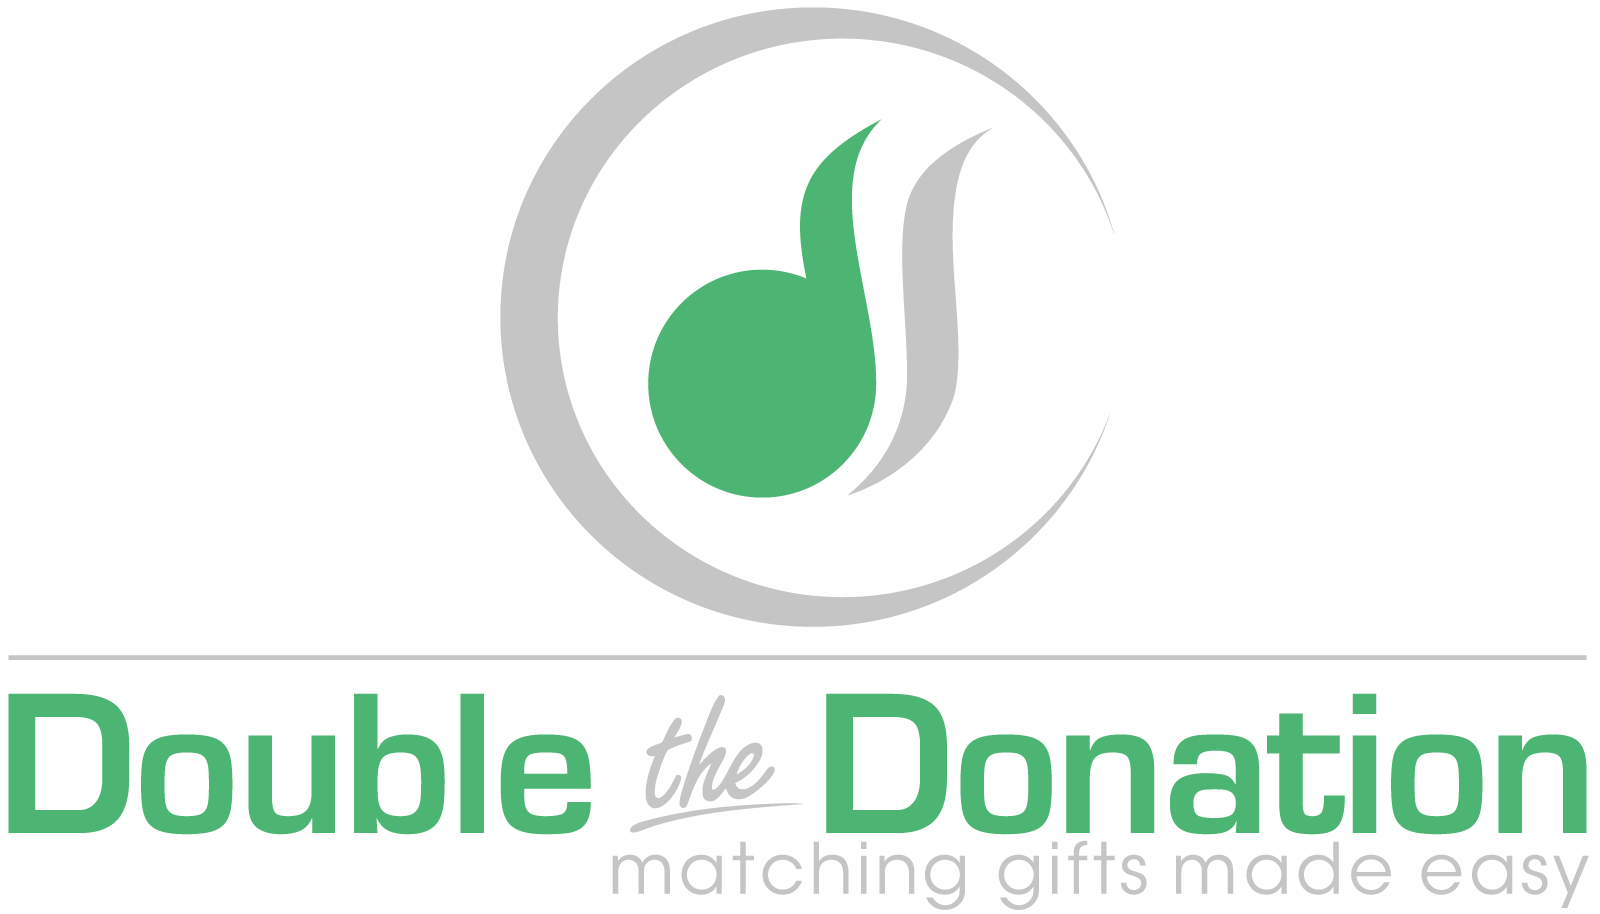 Double the Donation. See if your employer matches nonprofit contributions